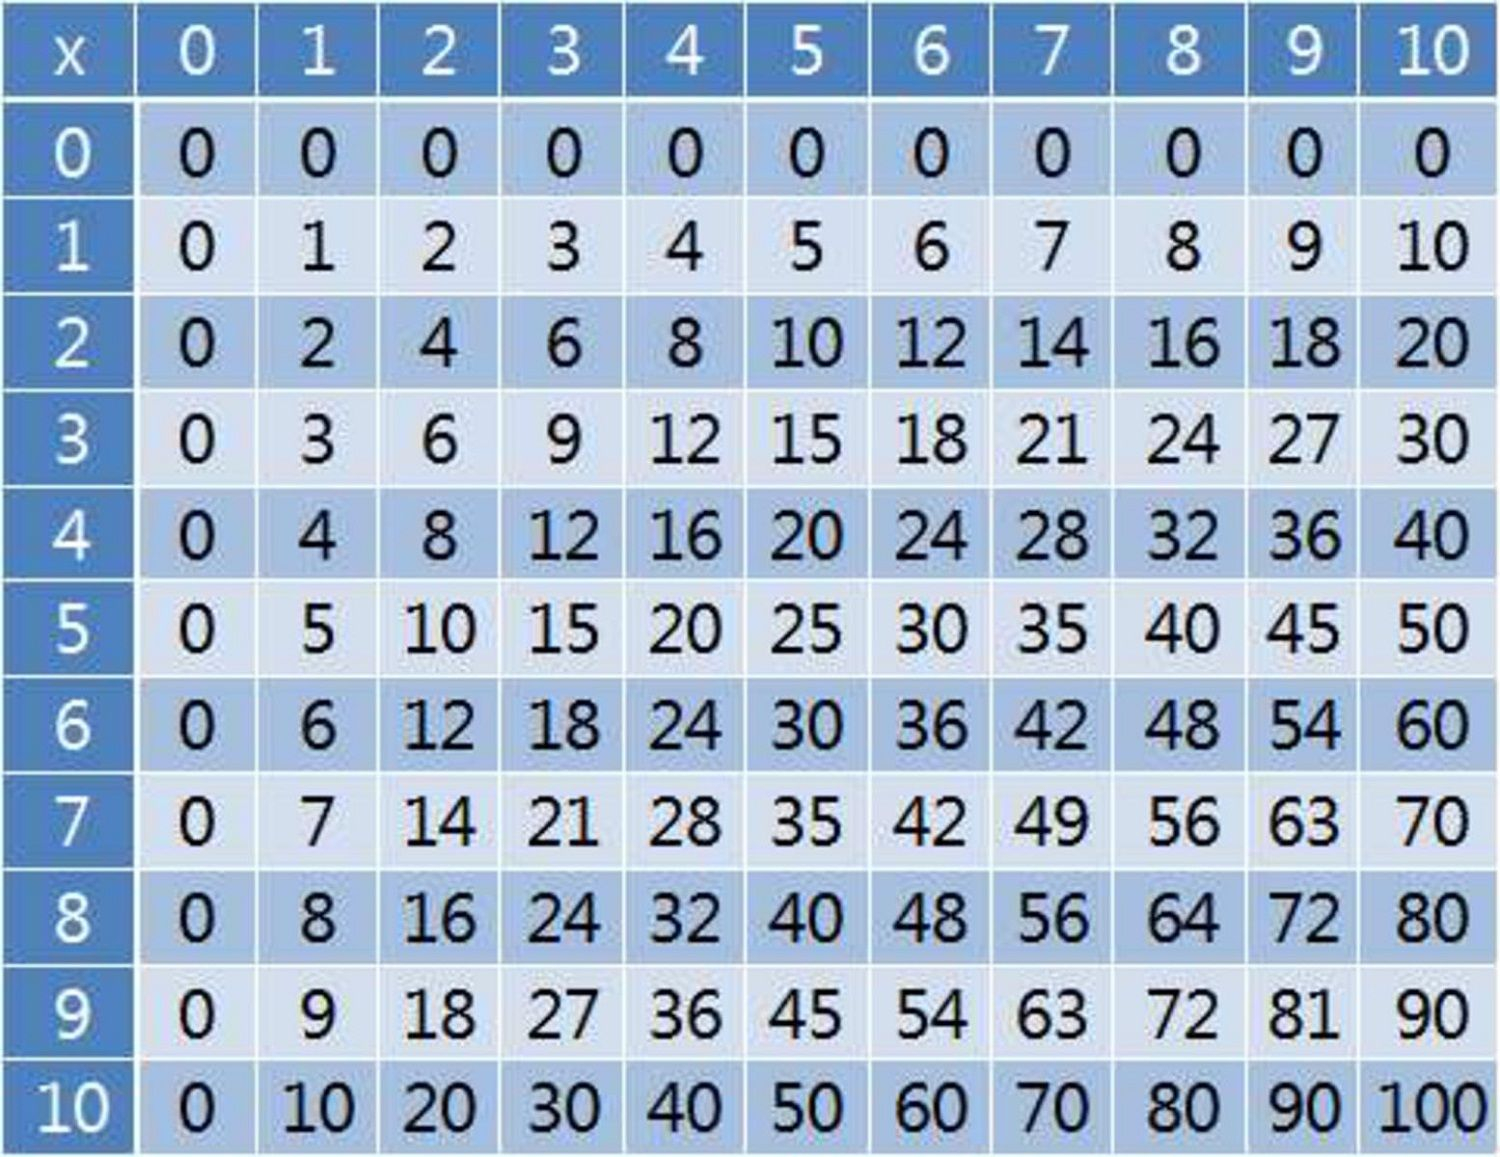 Large Multiplication Table To Train Memory | Multiplication